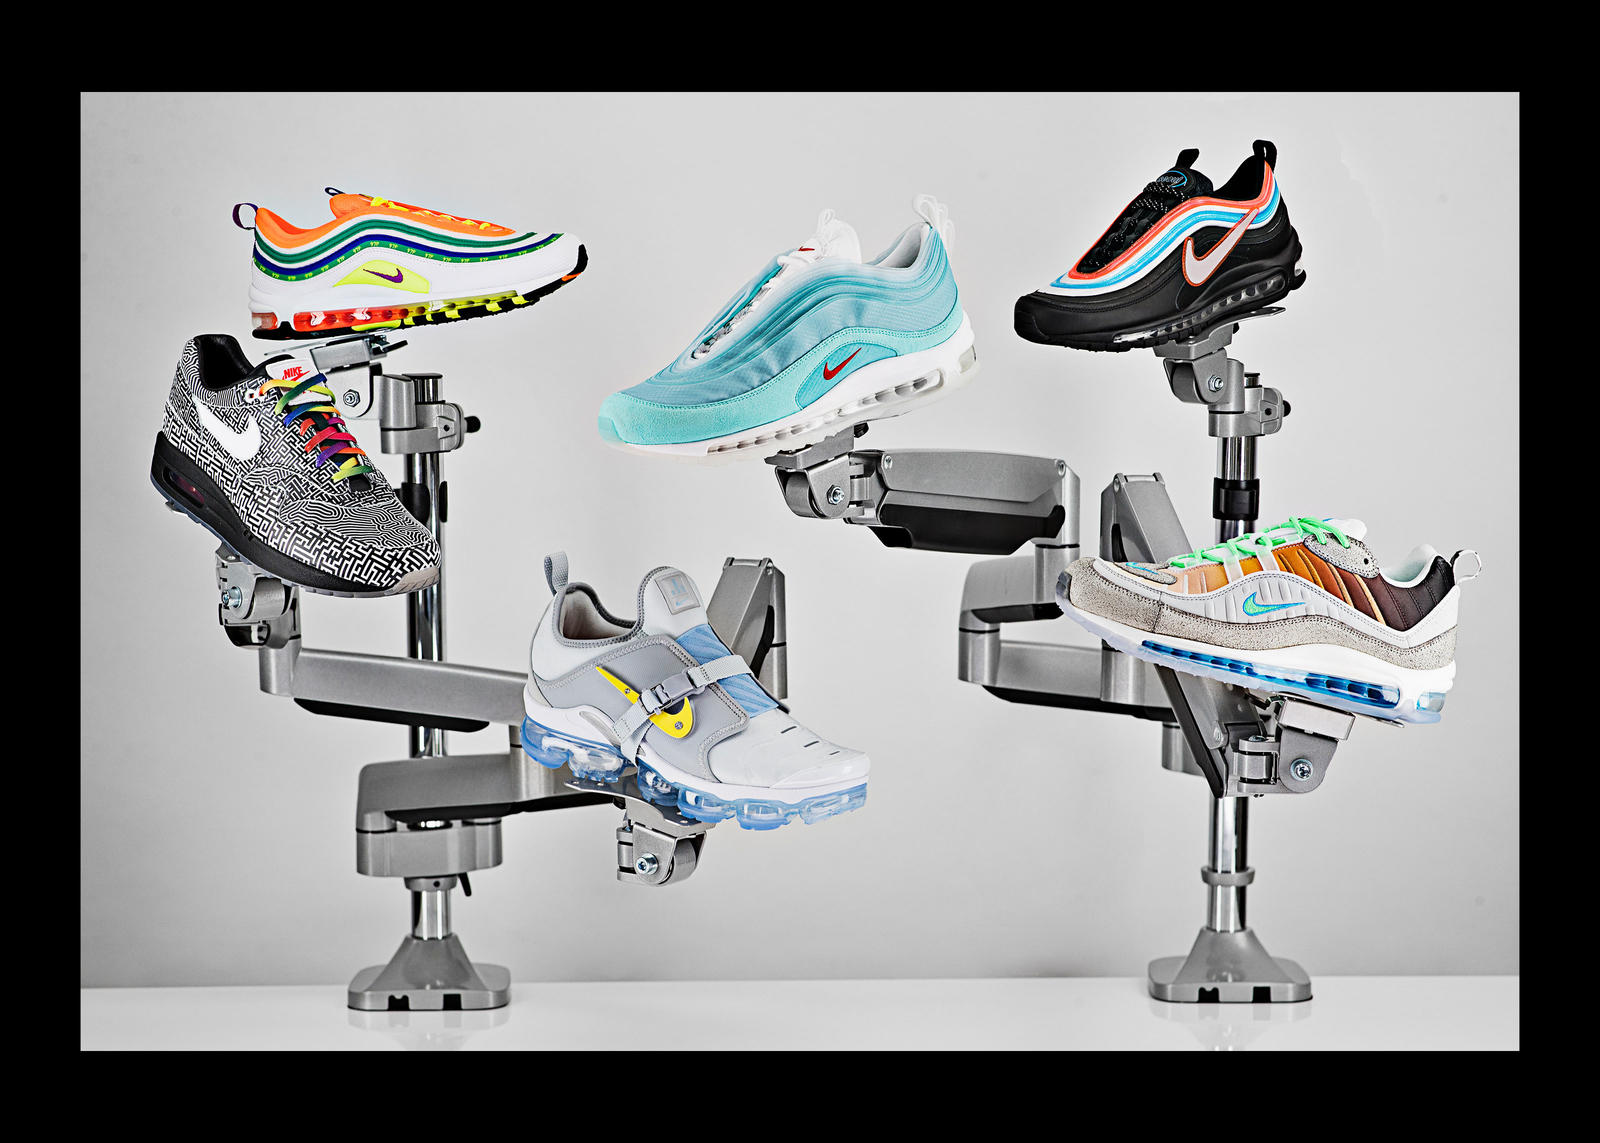 f3e4817c2e1dc Here are the Final Designs of the Nike  On Air Winners  Mock Draft